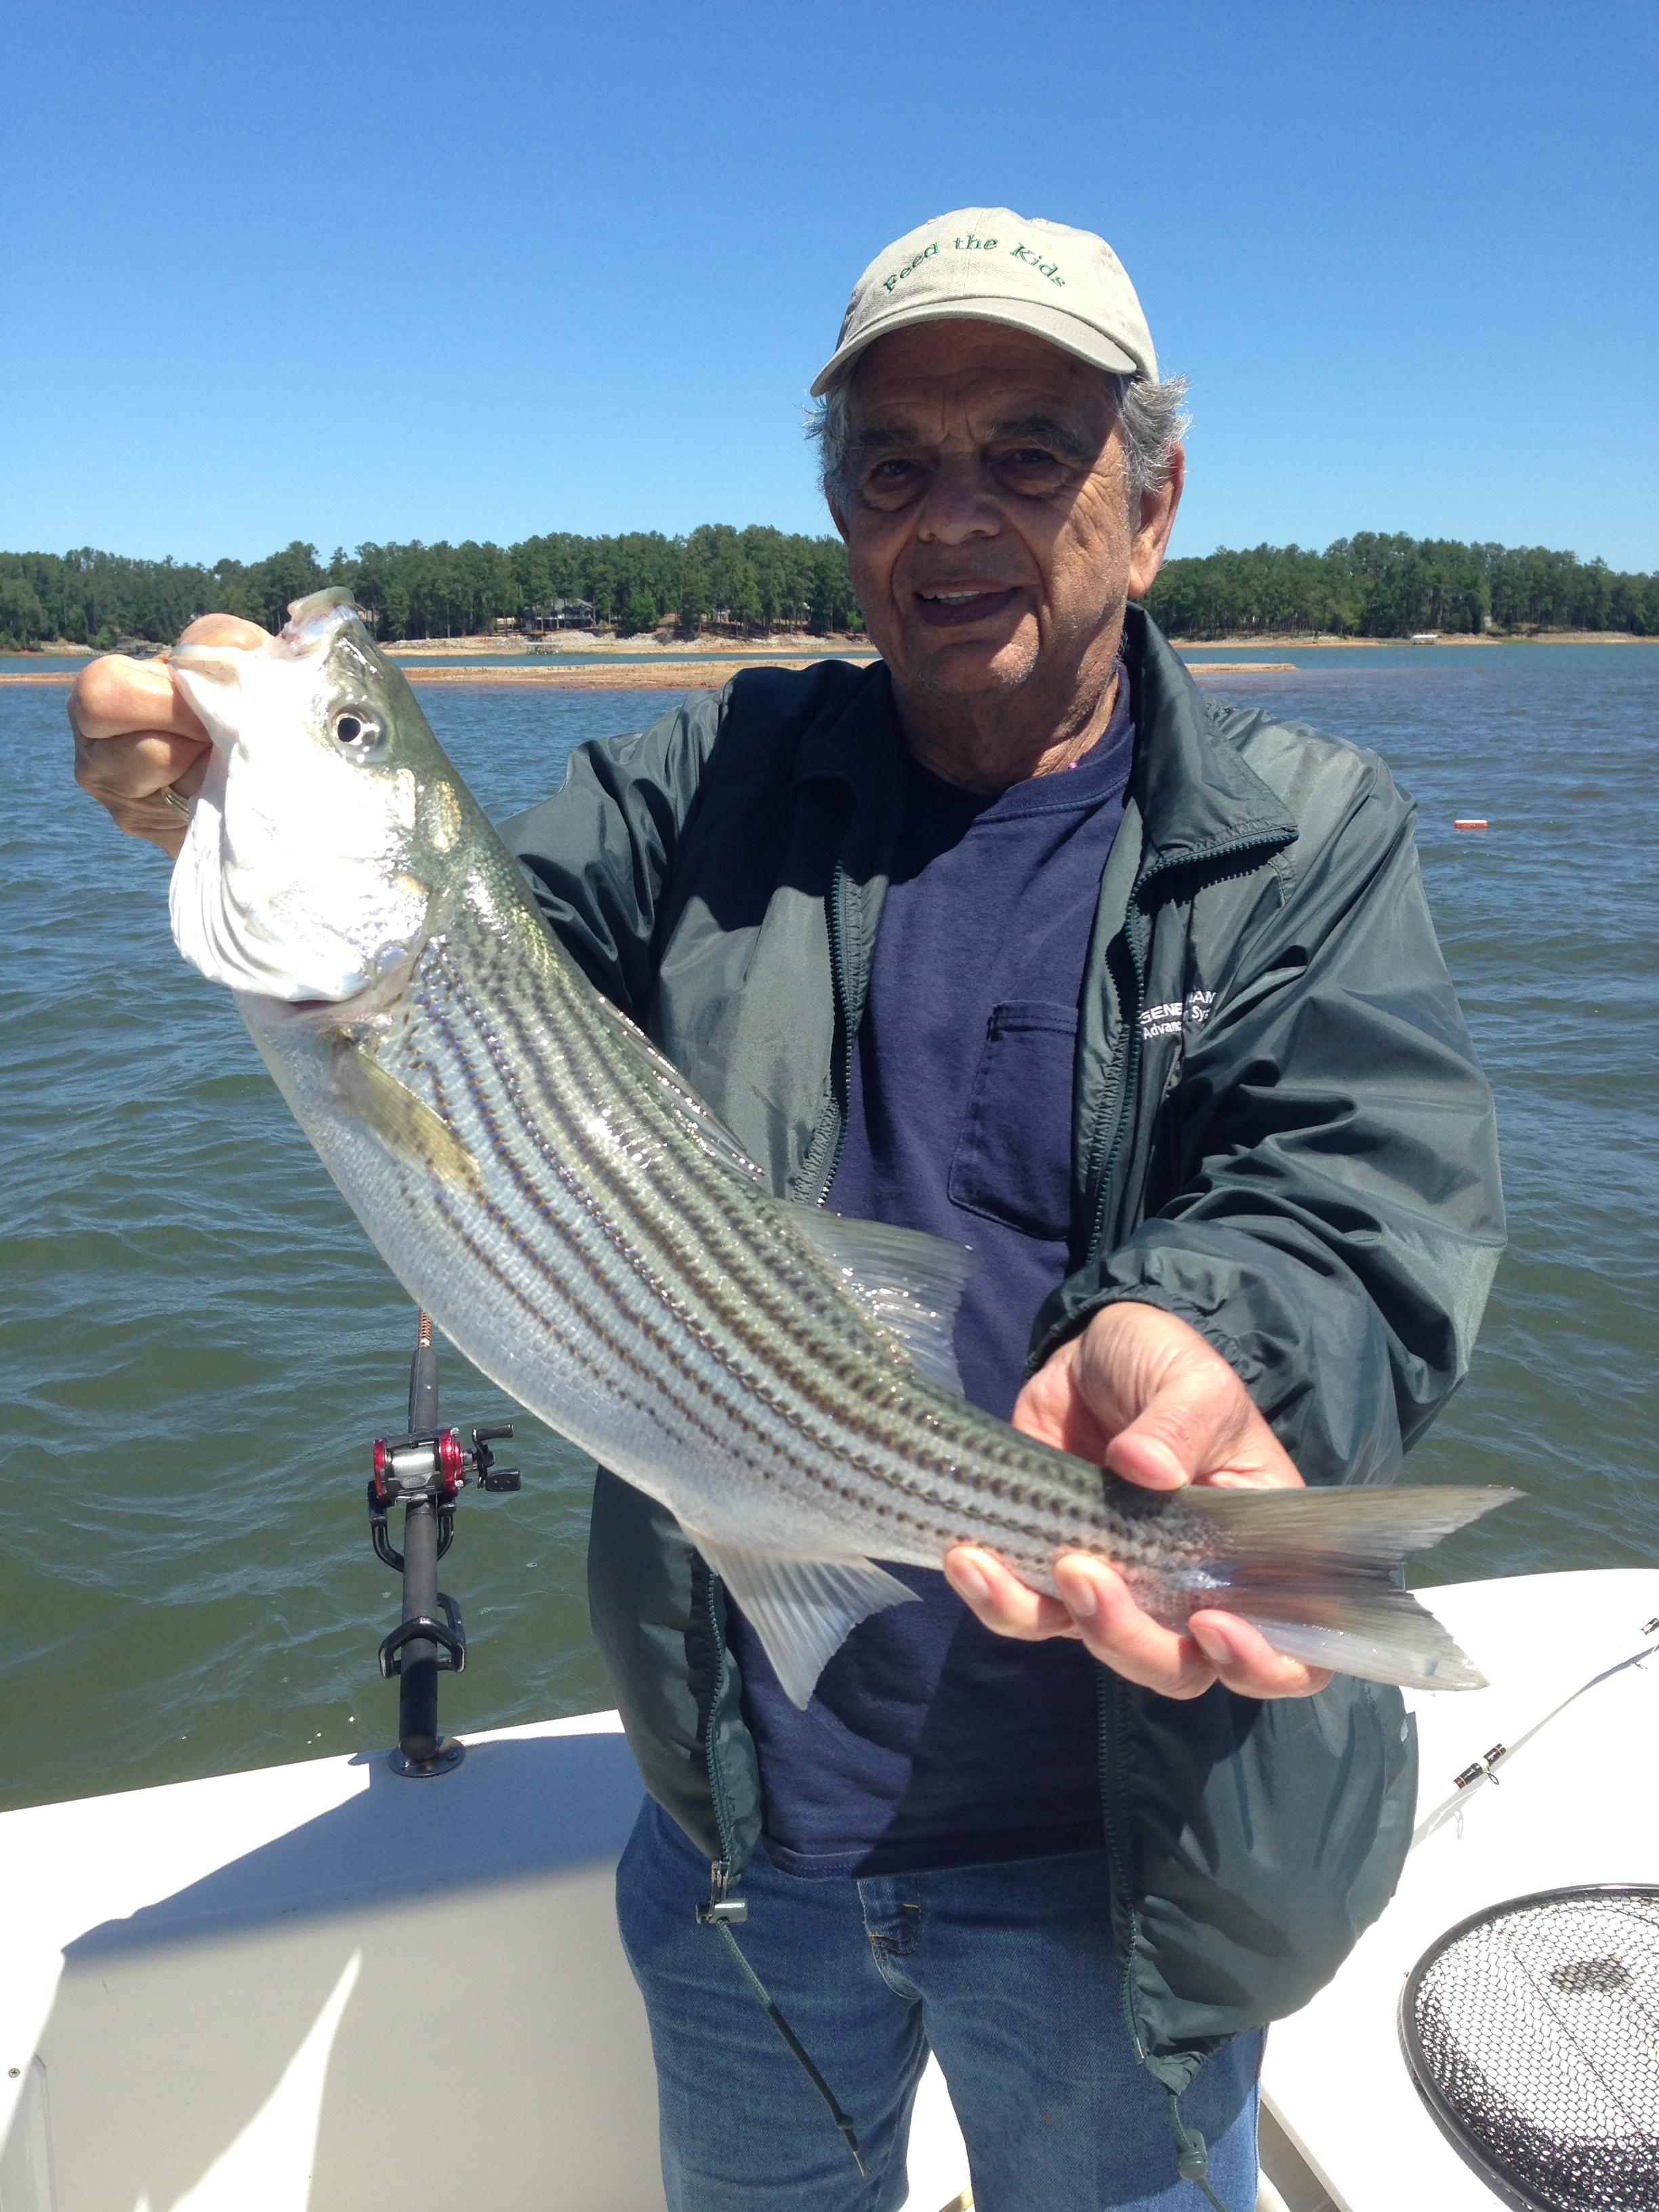 May 2, 2017 Irv Kershner from Henderville, N. C. with his 10 lb striper